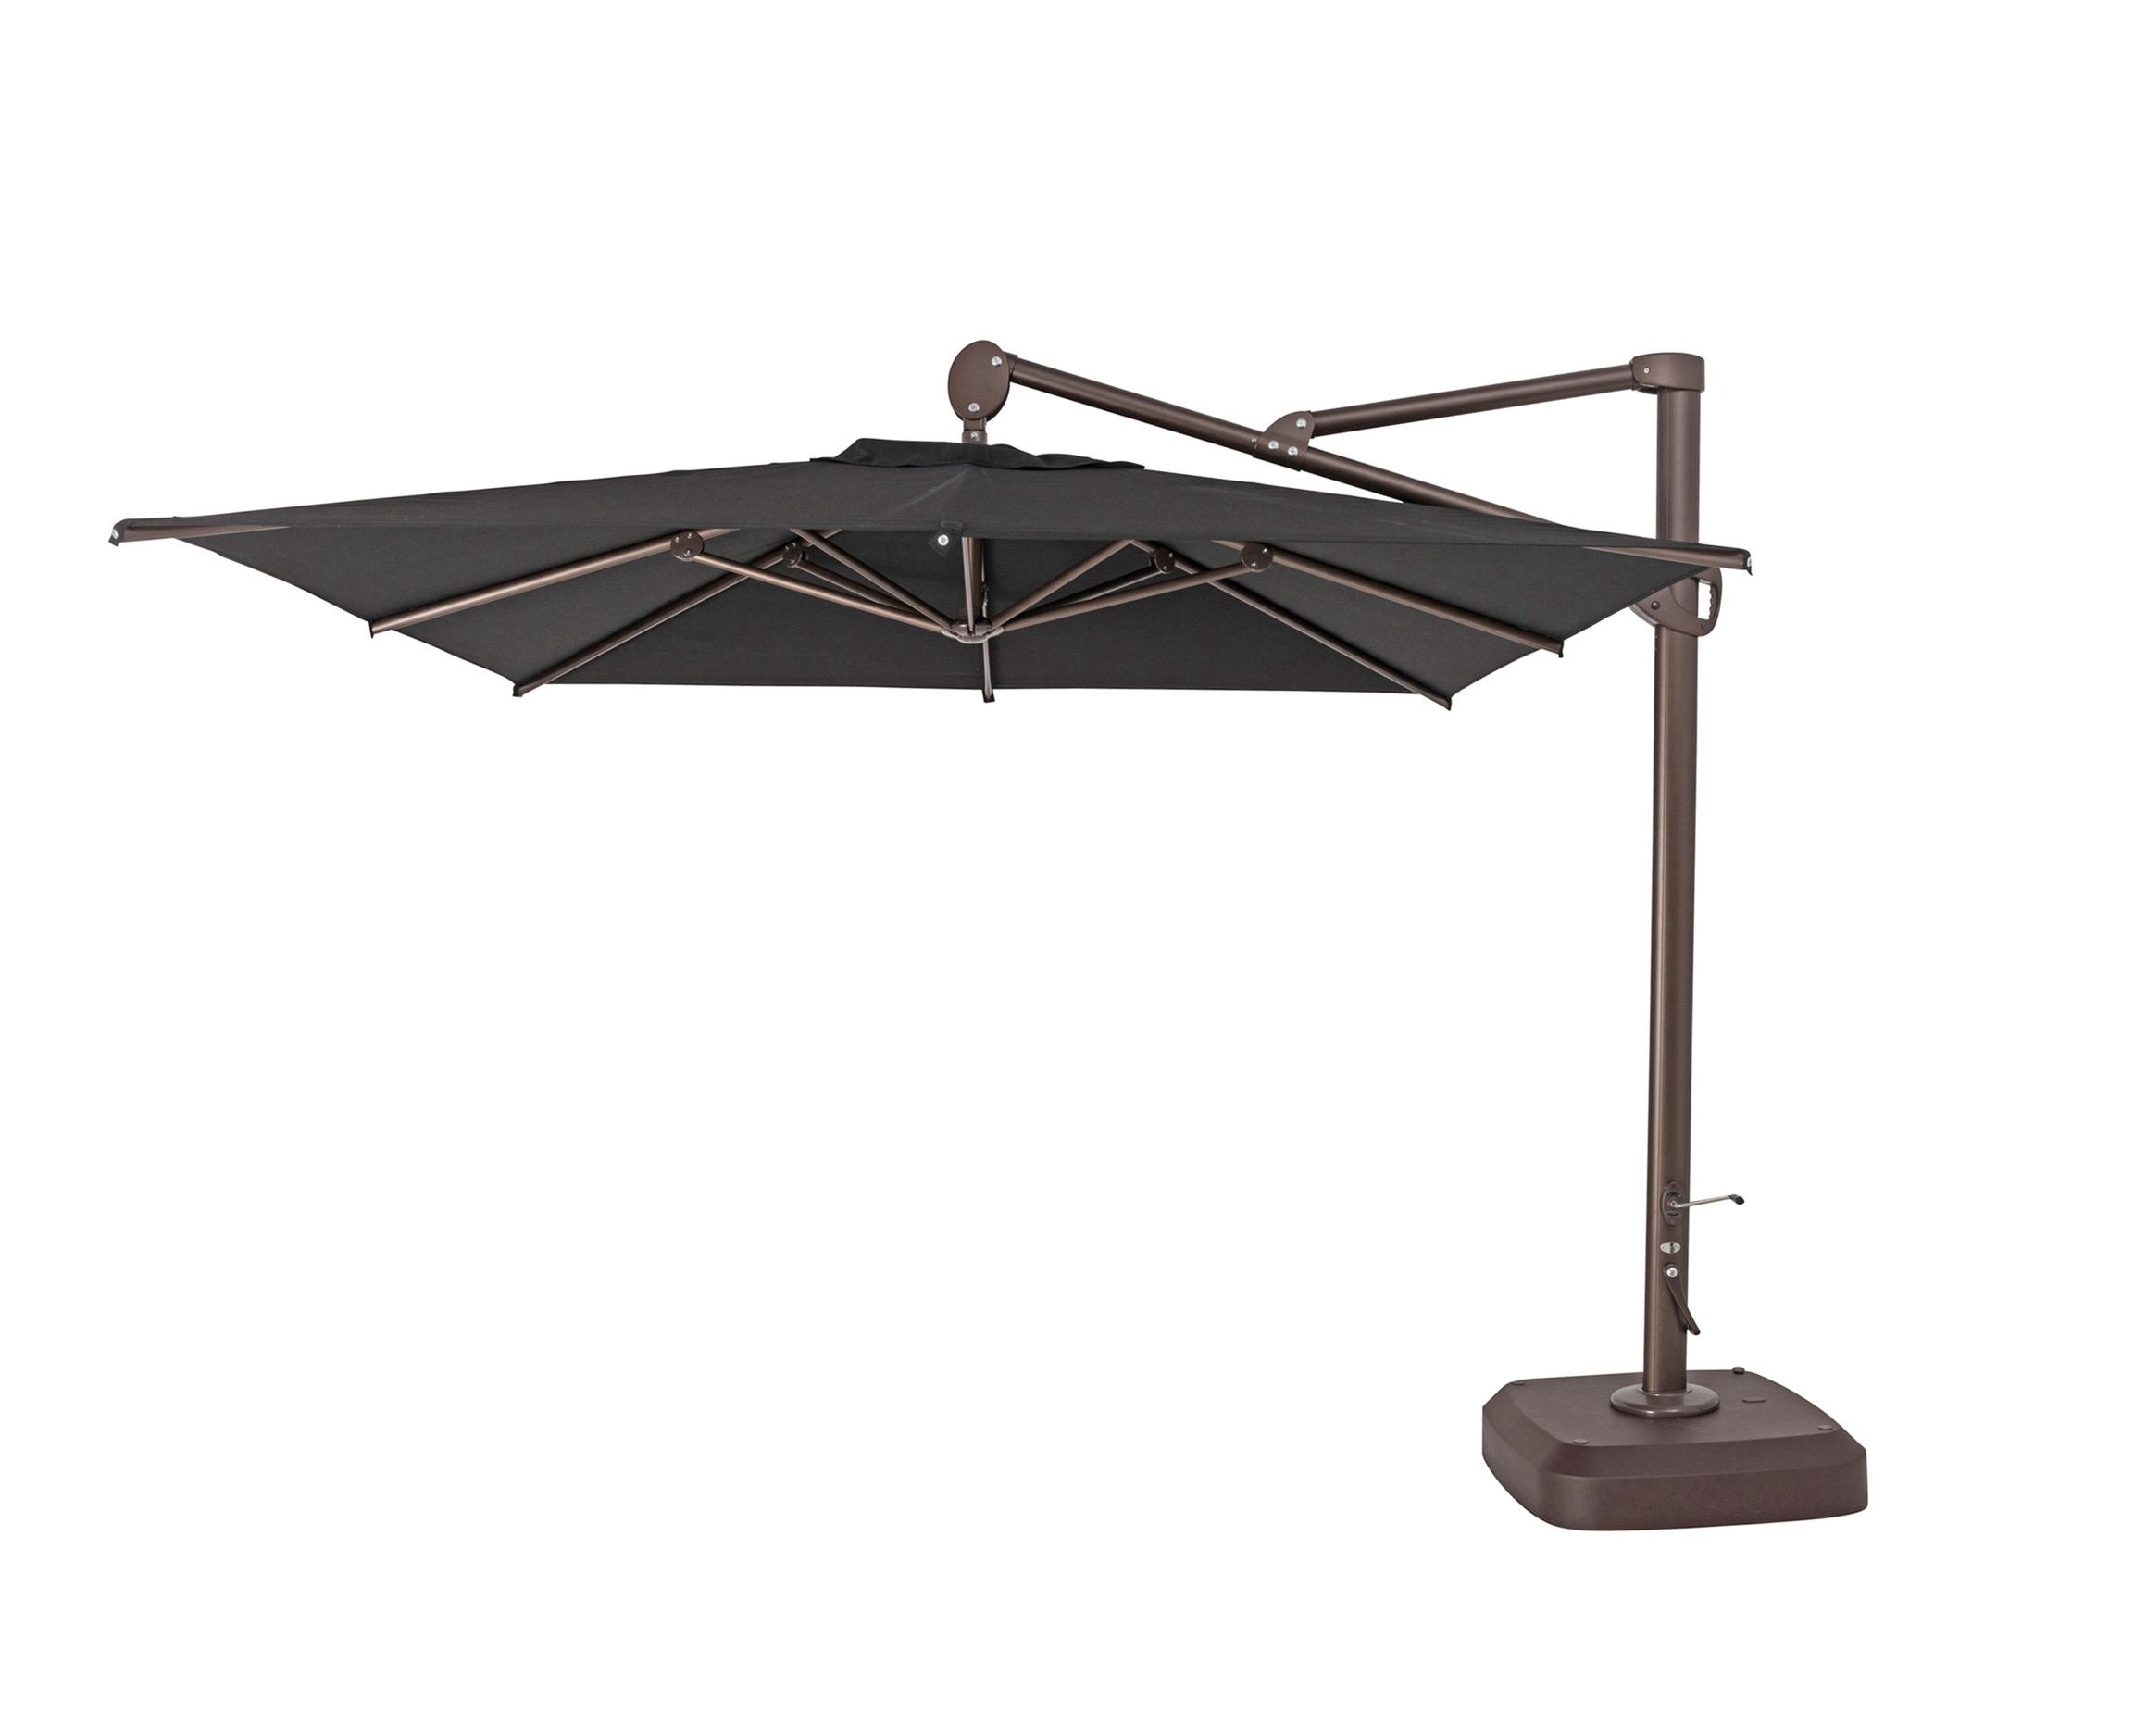 10' Square Cantilever Umbrella Pertaining To Most Recently Released Spitler Square Cantilever Umbrellas (View 1 of 20)